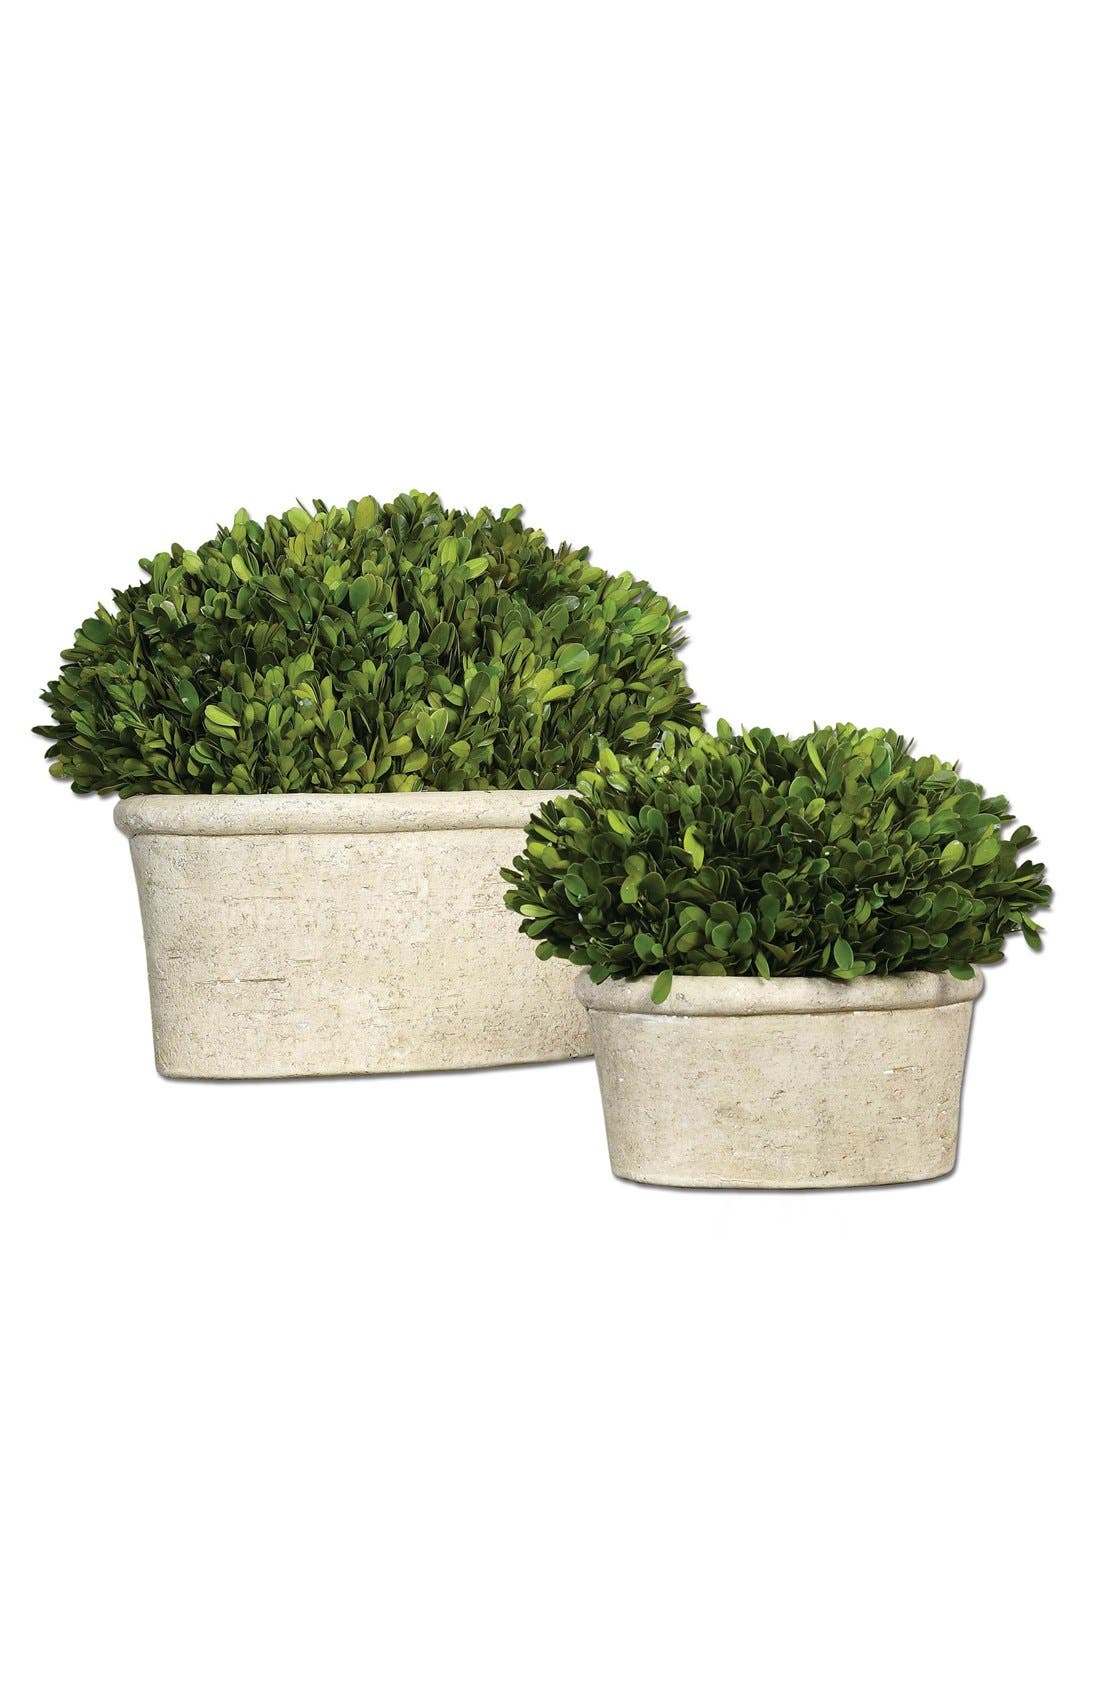 'Oval Domes' Preserved Boxwood Decorations,                         Main,                         color, Green